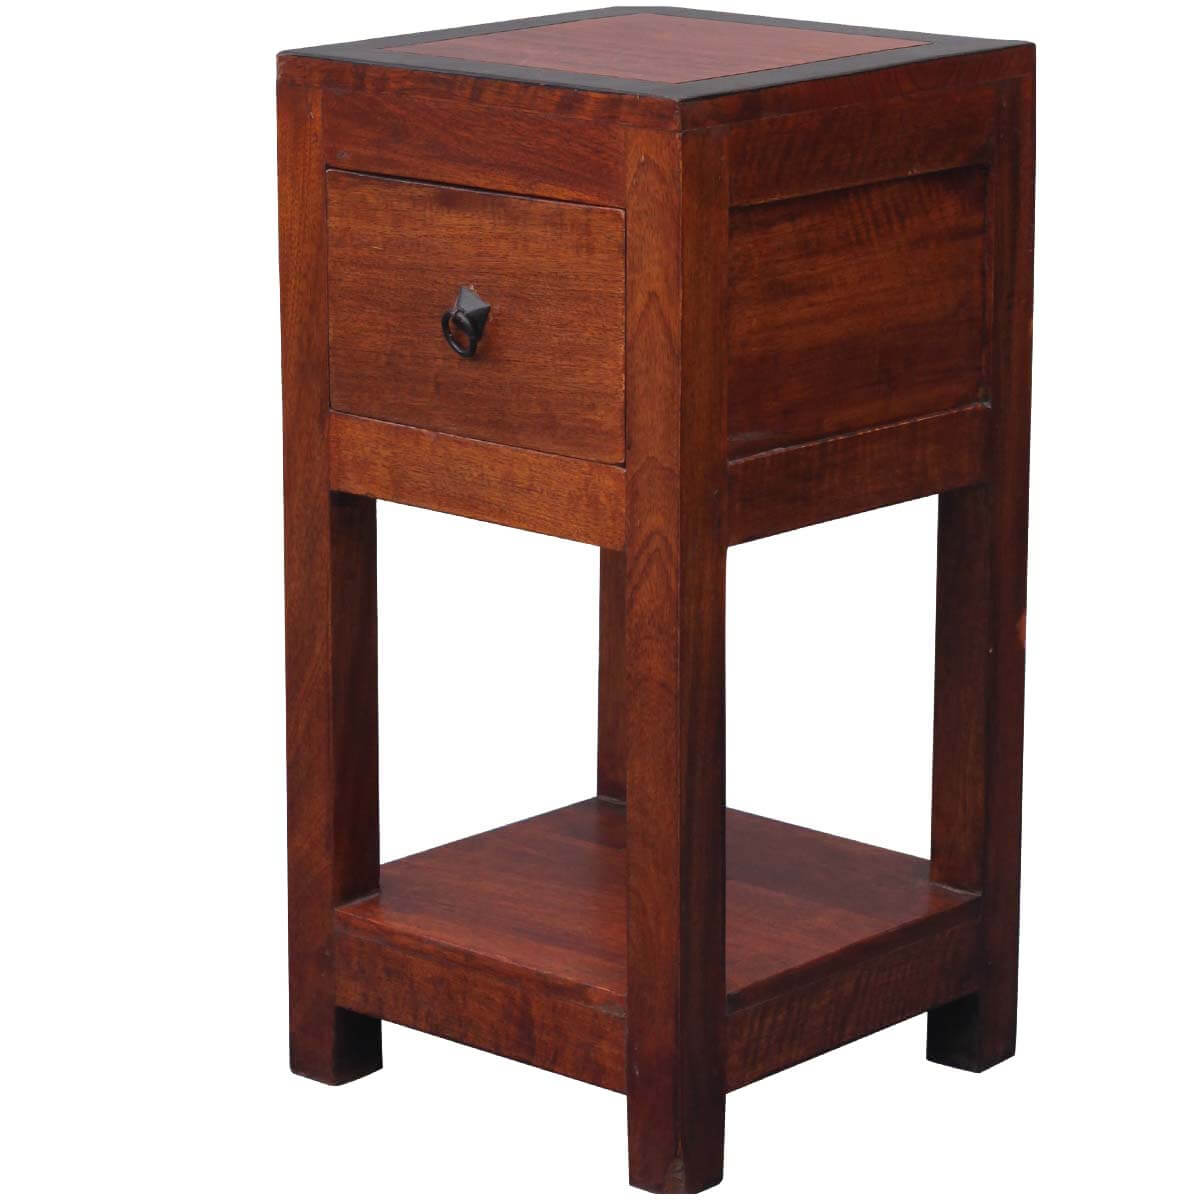 Square 2 Tier Indian Rosewood Nightstand End Table W Drawer